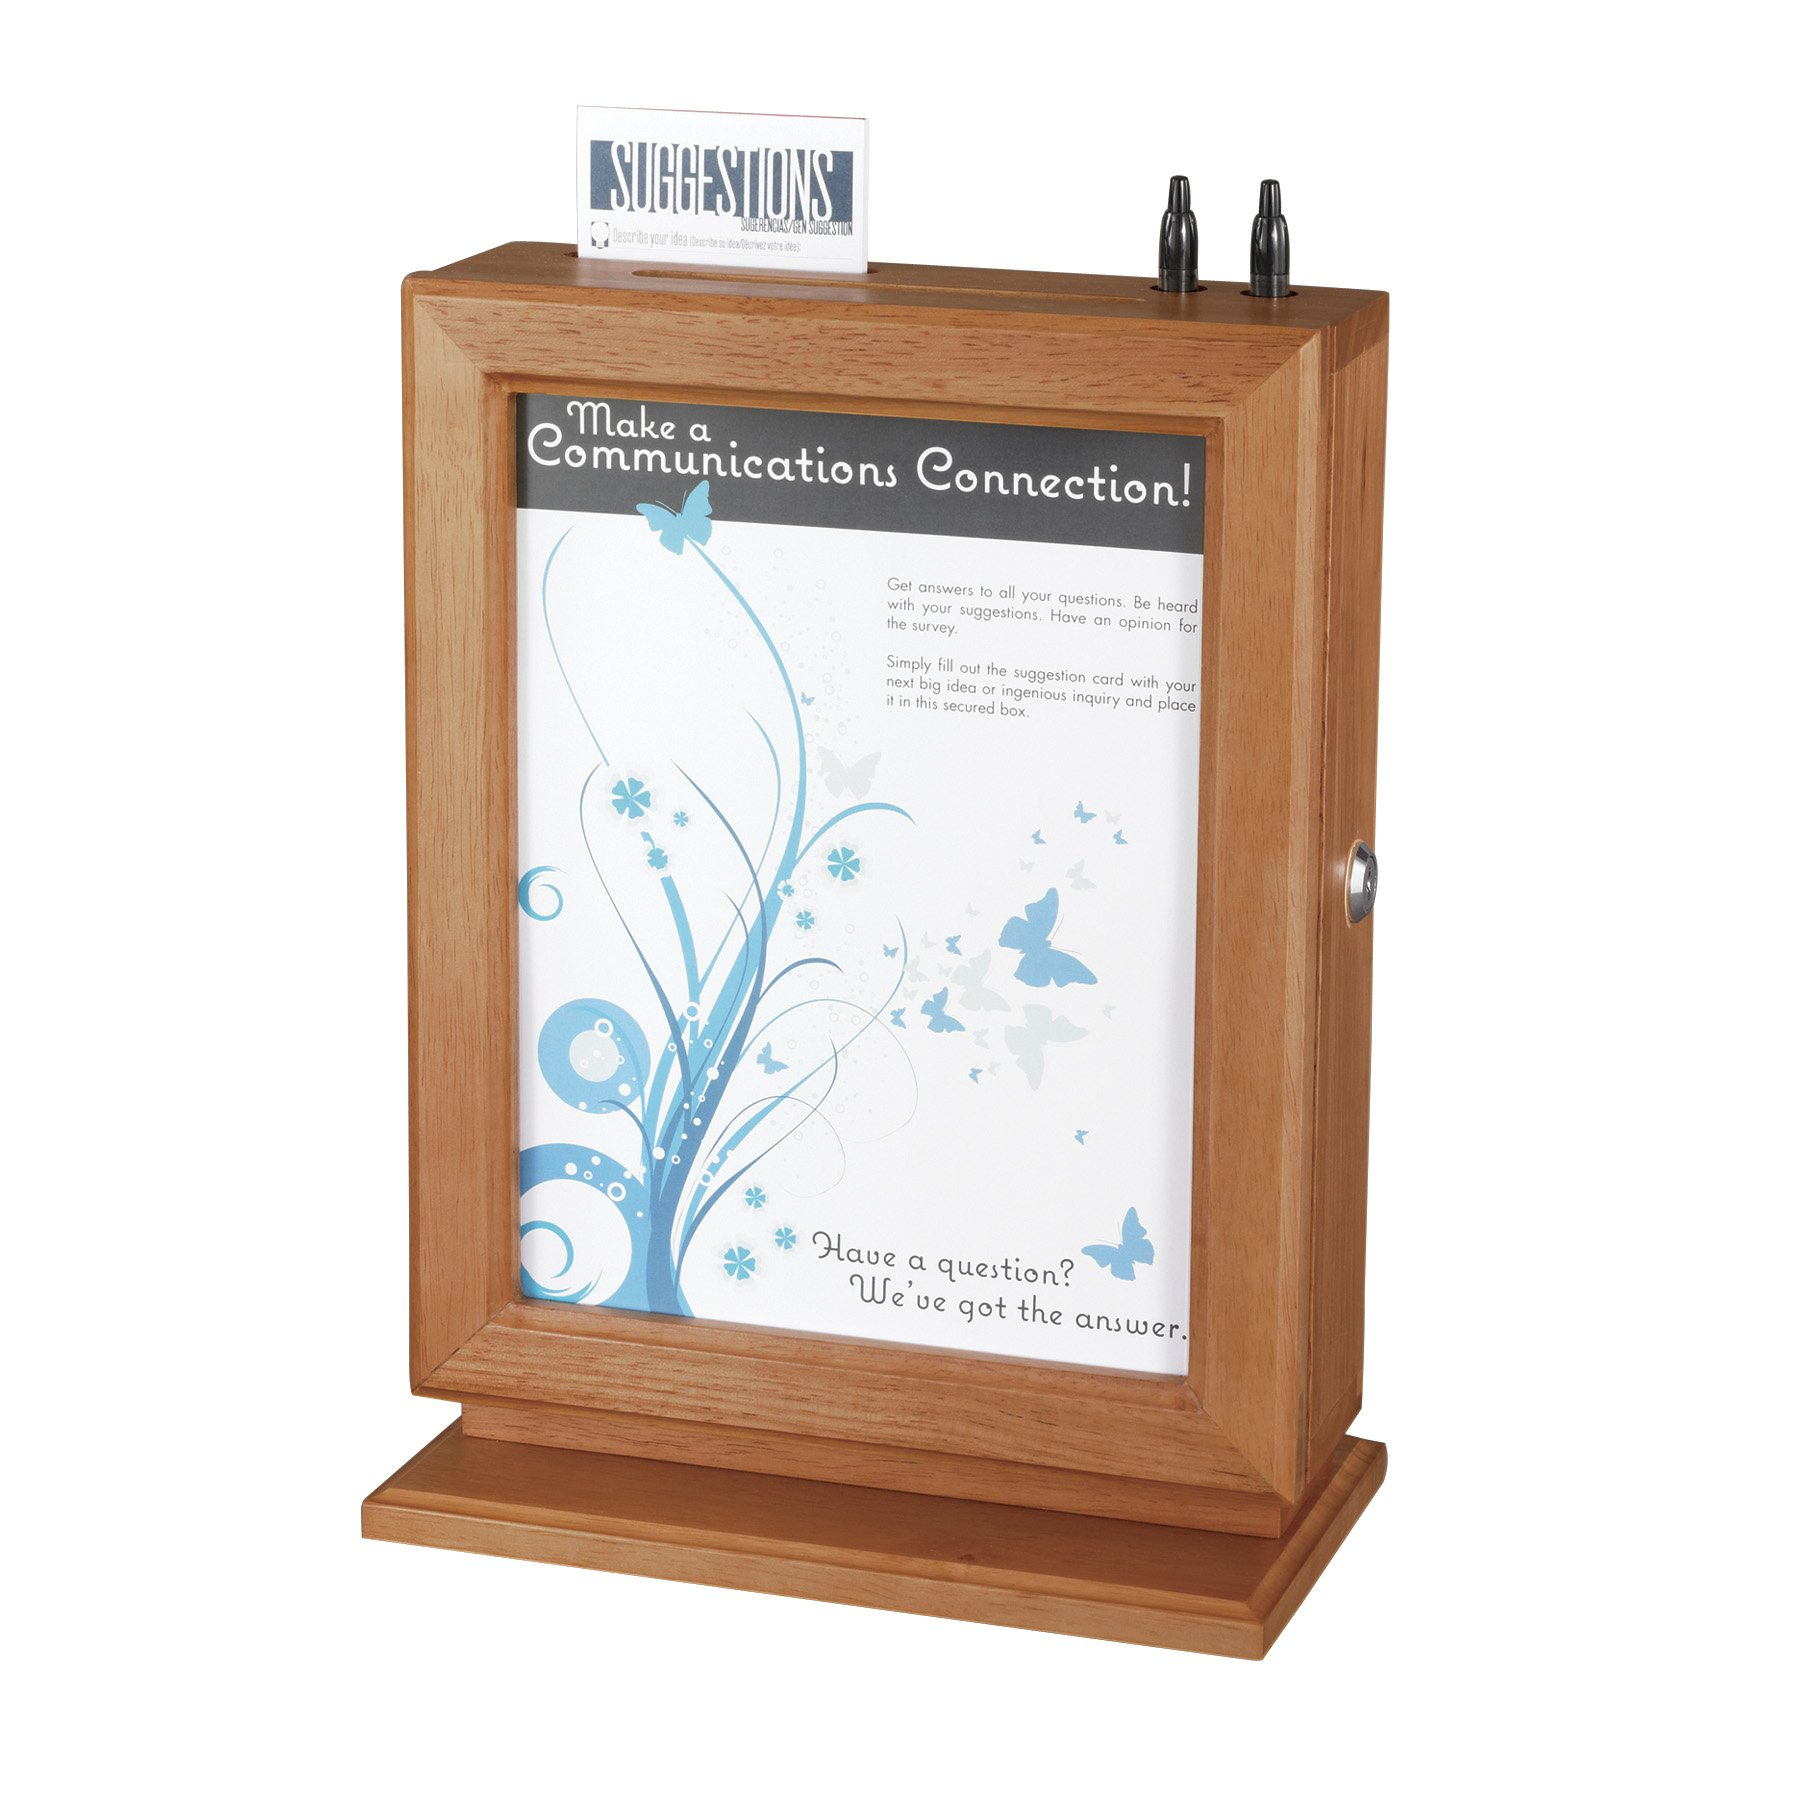 Safco Products 4236CY Customizable Wood Suggestion Box, Cherry